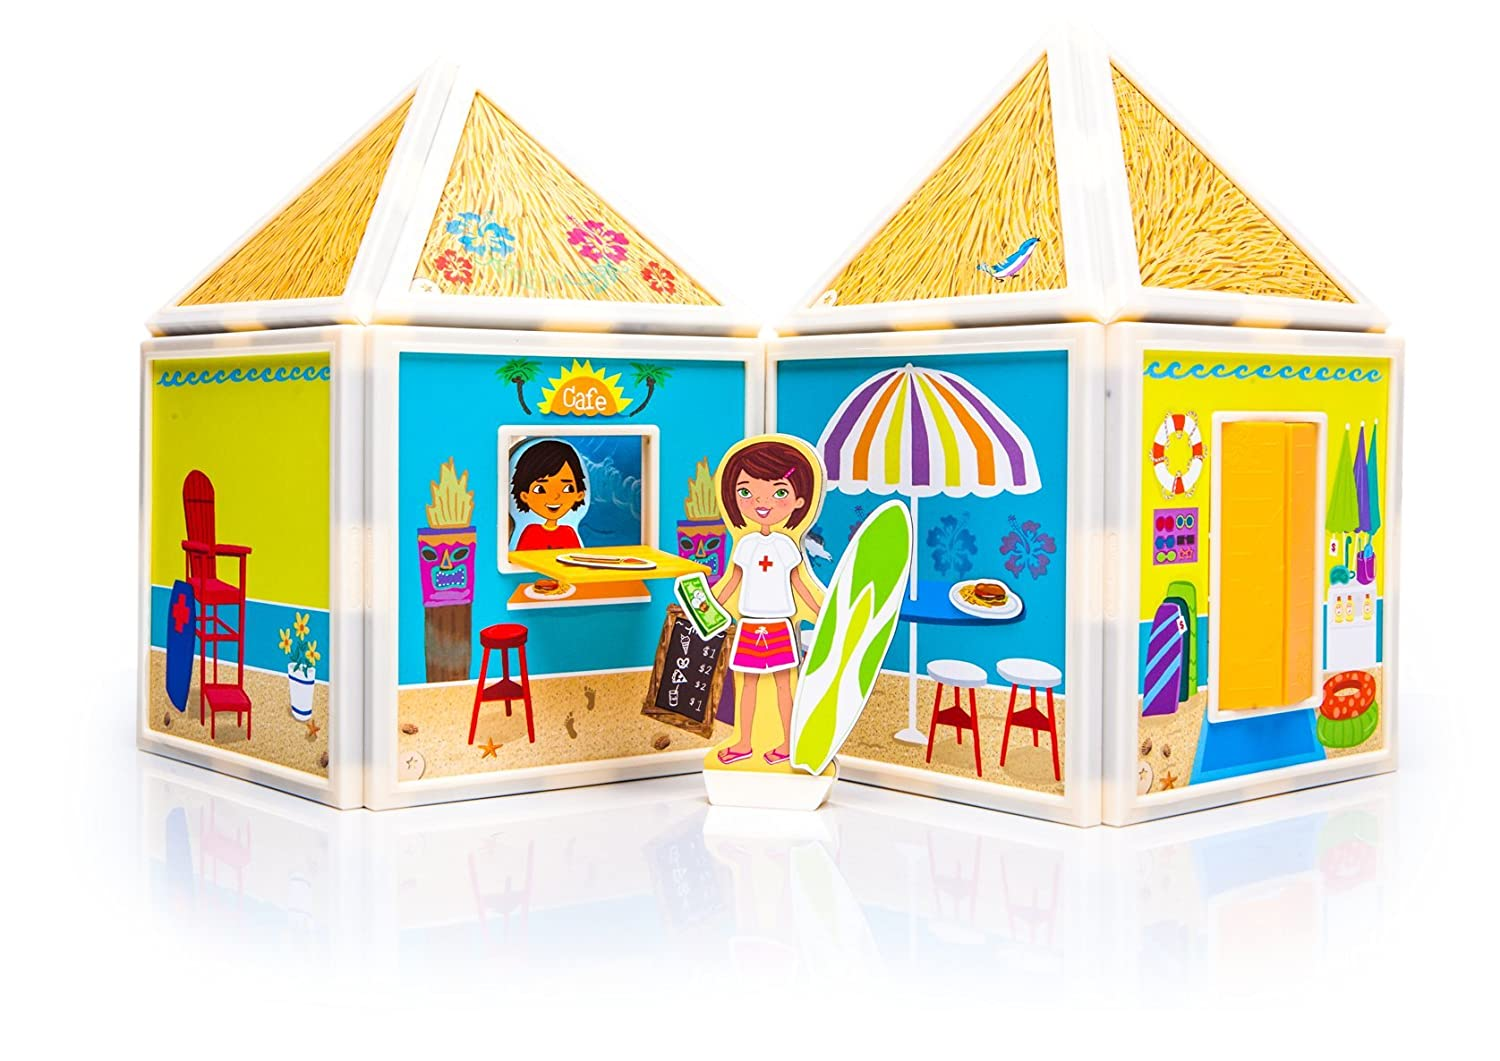 Build & Imagine: Day at the Beach (magnetic building set with girl and boy characters)